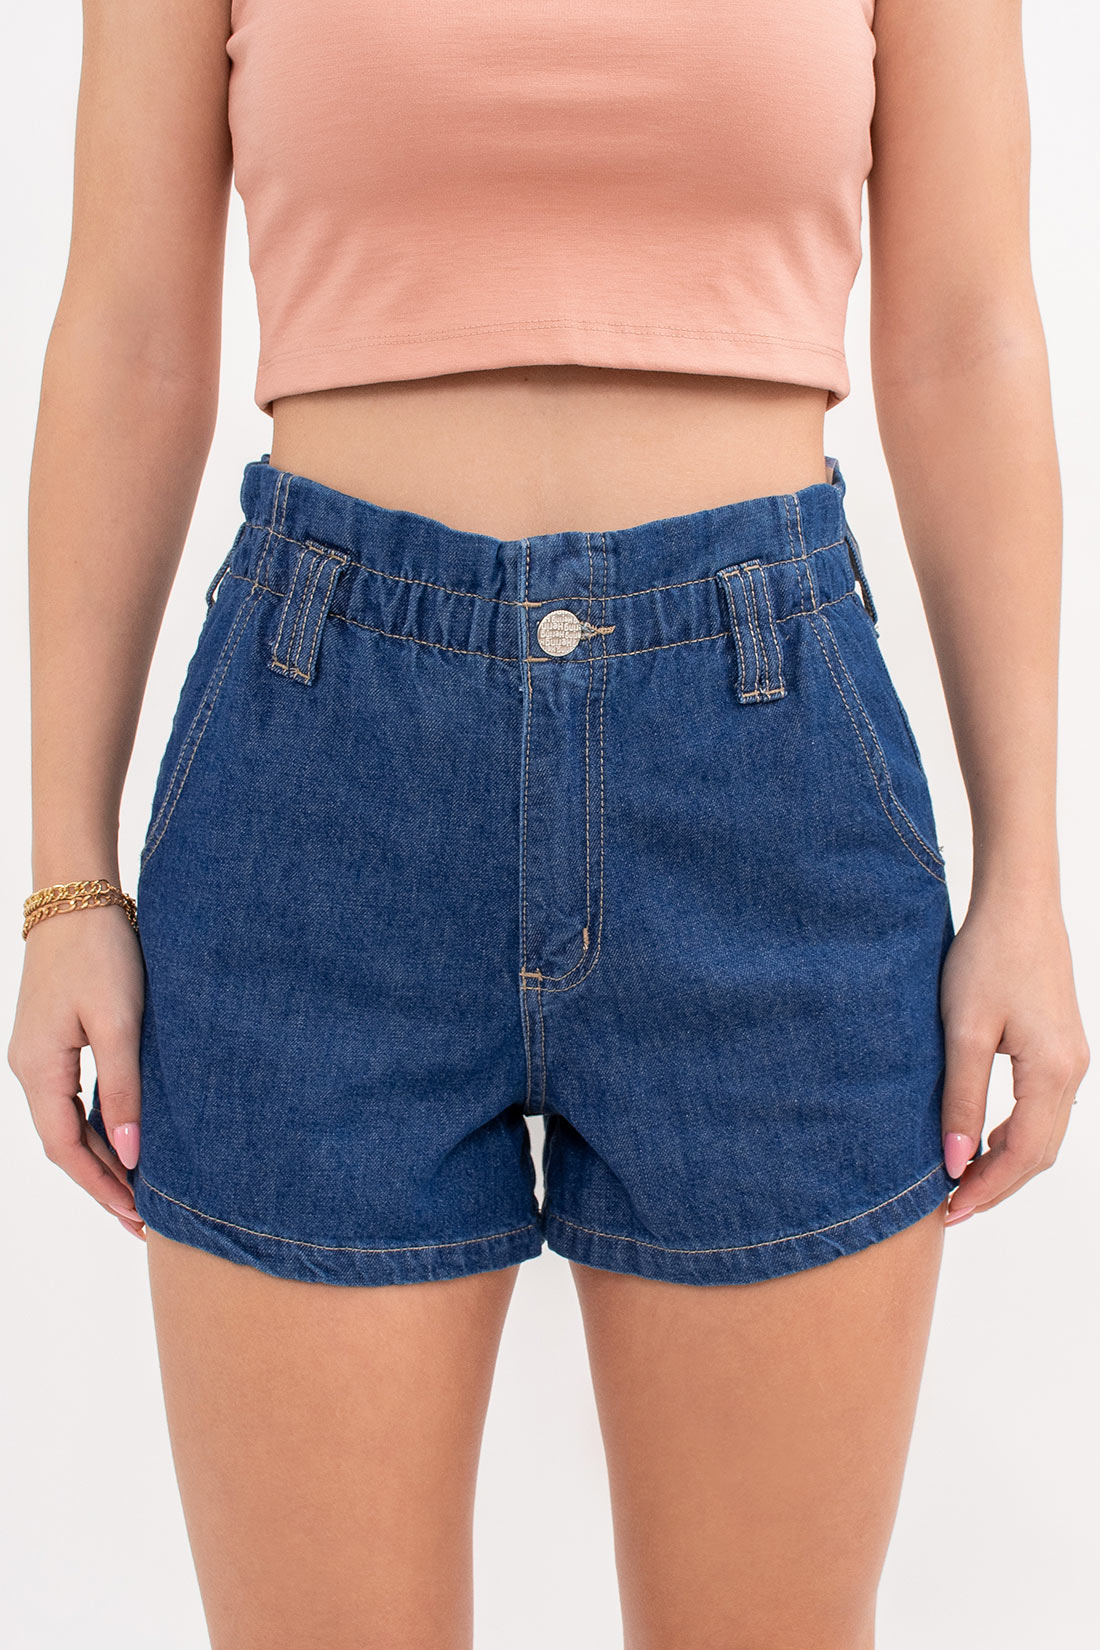 Shorts Jeans Hering Elastico